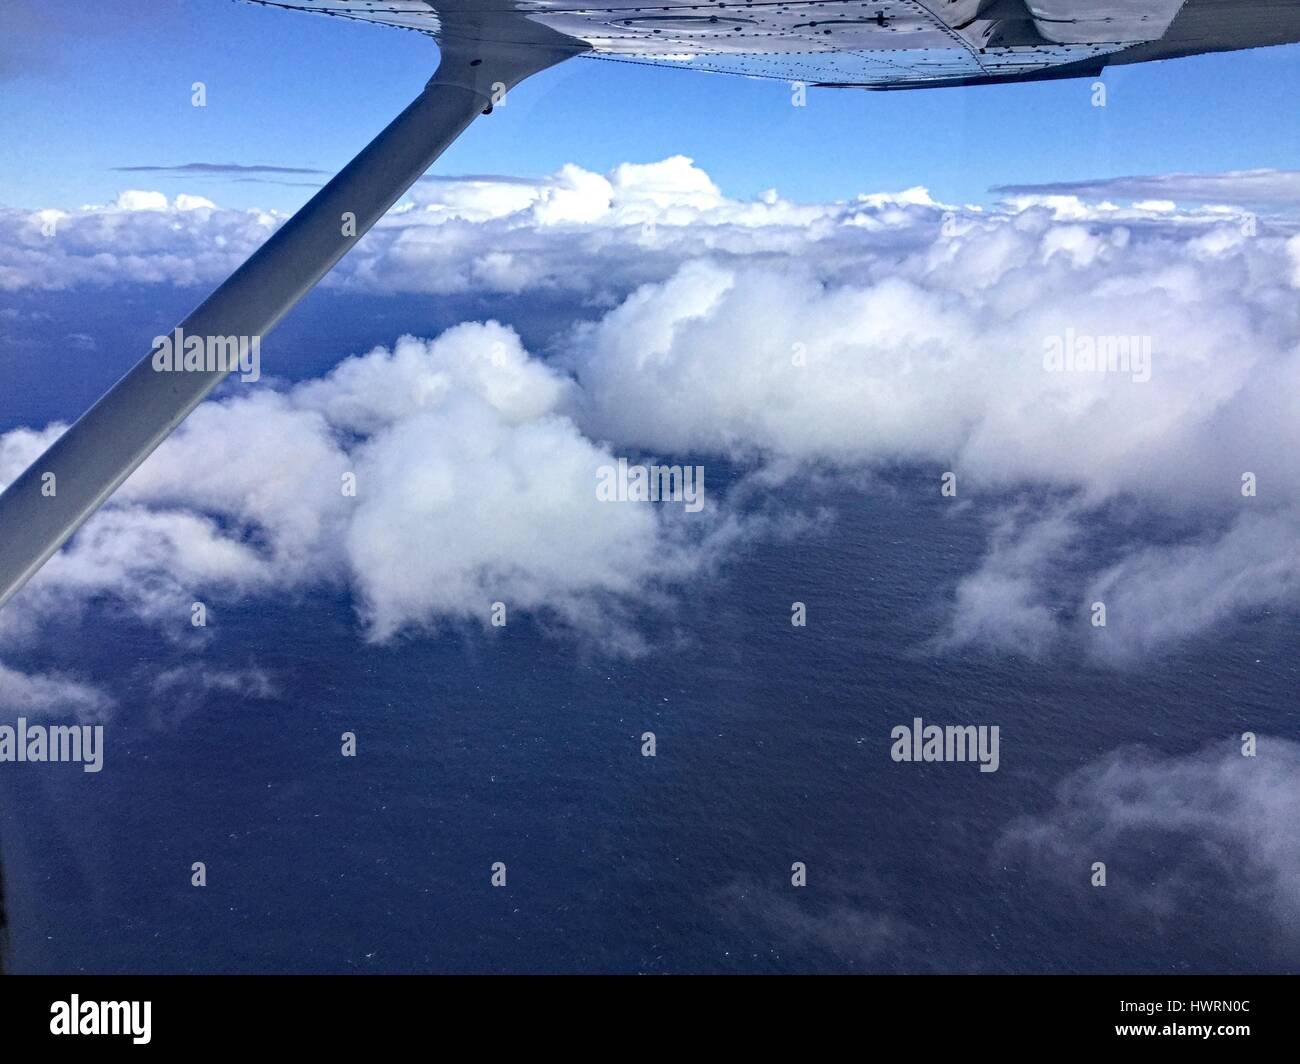 View from window of a light plane flying above the clouds over the ocean. Stock Photo